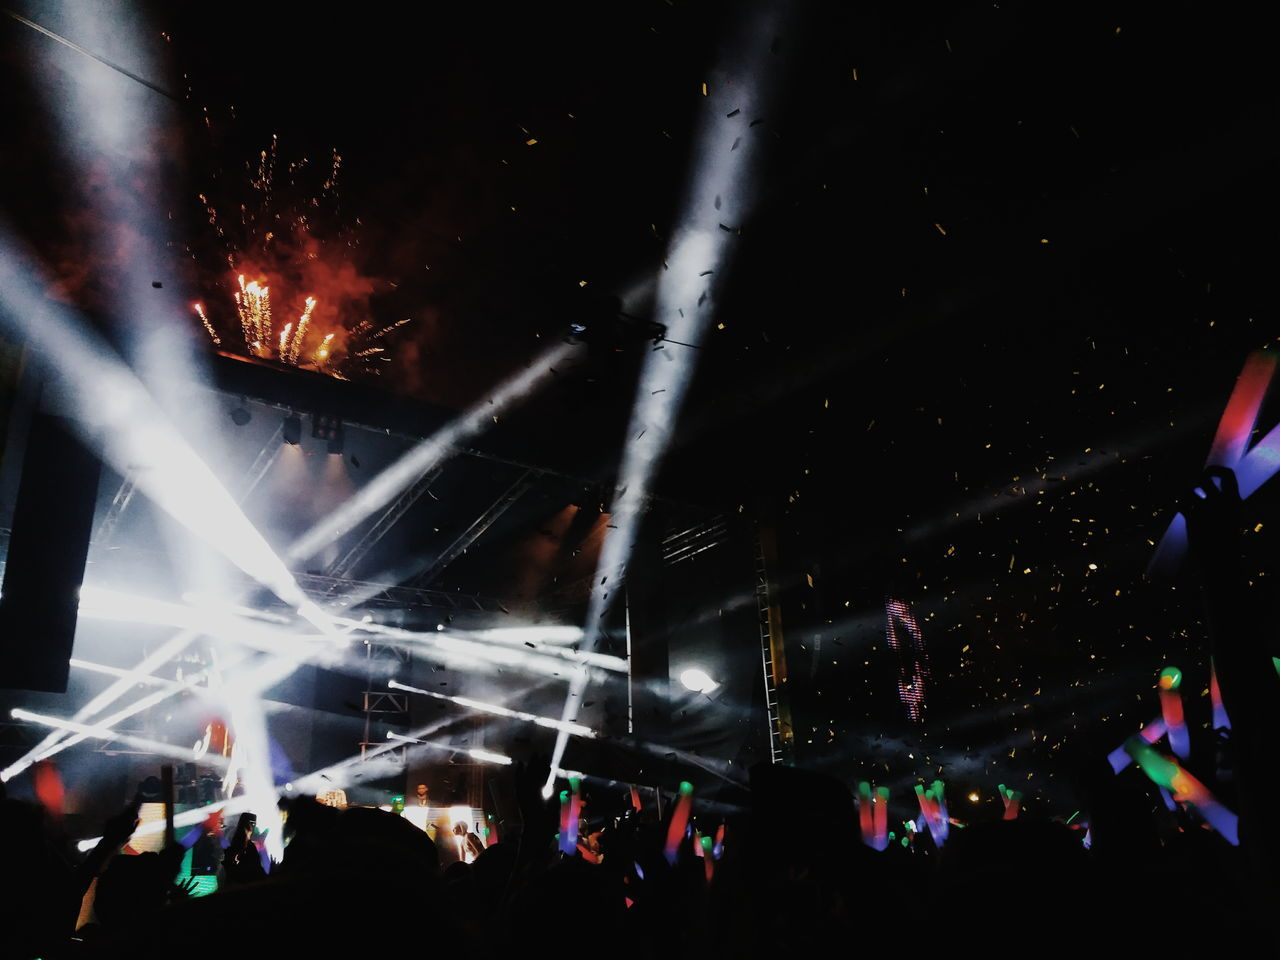 Arts Culture And Entertainment Night Music Nightlife Performance Popular Music Concert Event Stage - Performance Space Crowd Music Festival Large Group Of People Performing Arts Event Stage Light Fun Enjoyment Audience People Illuminated Fan - Enthusiast Celebration